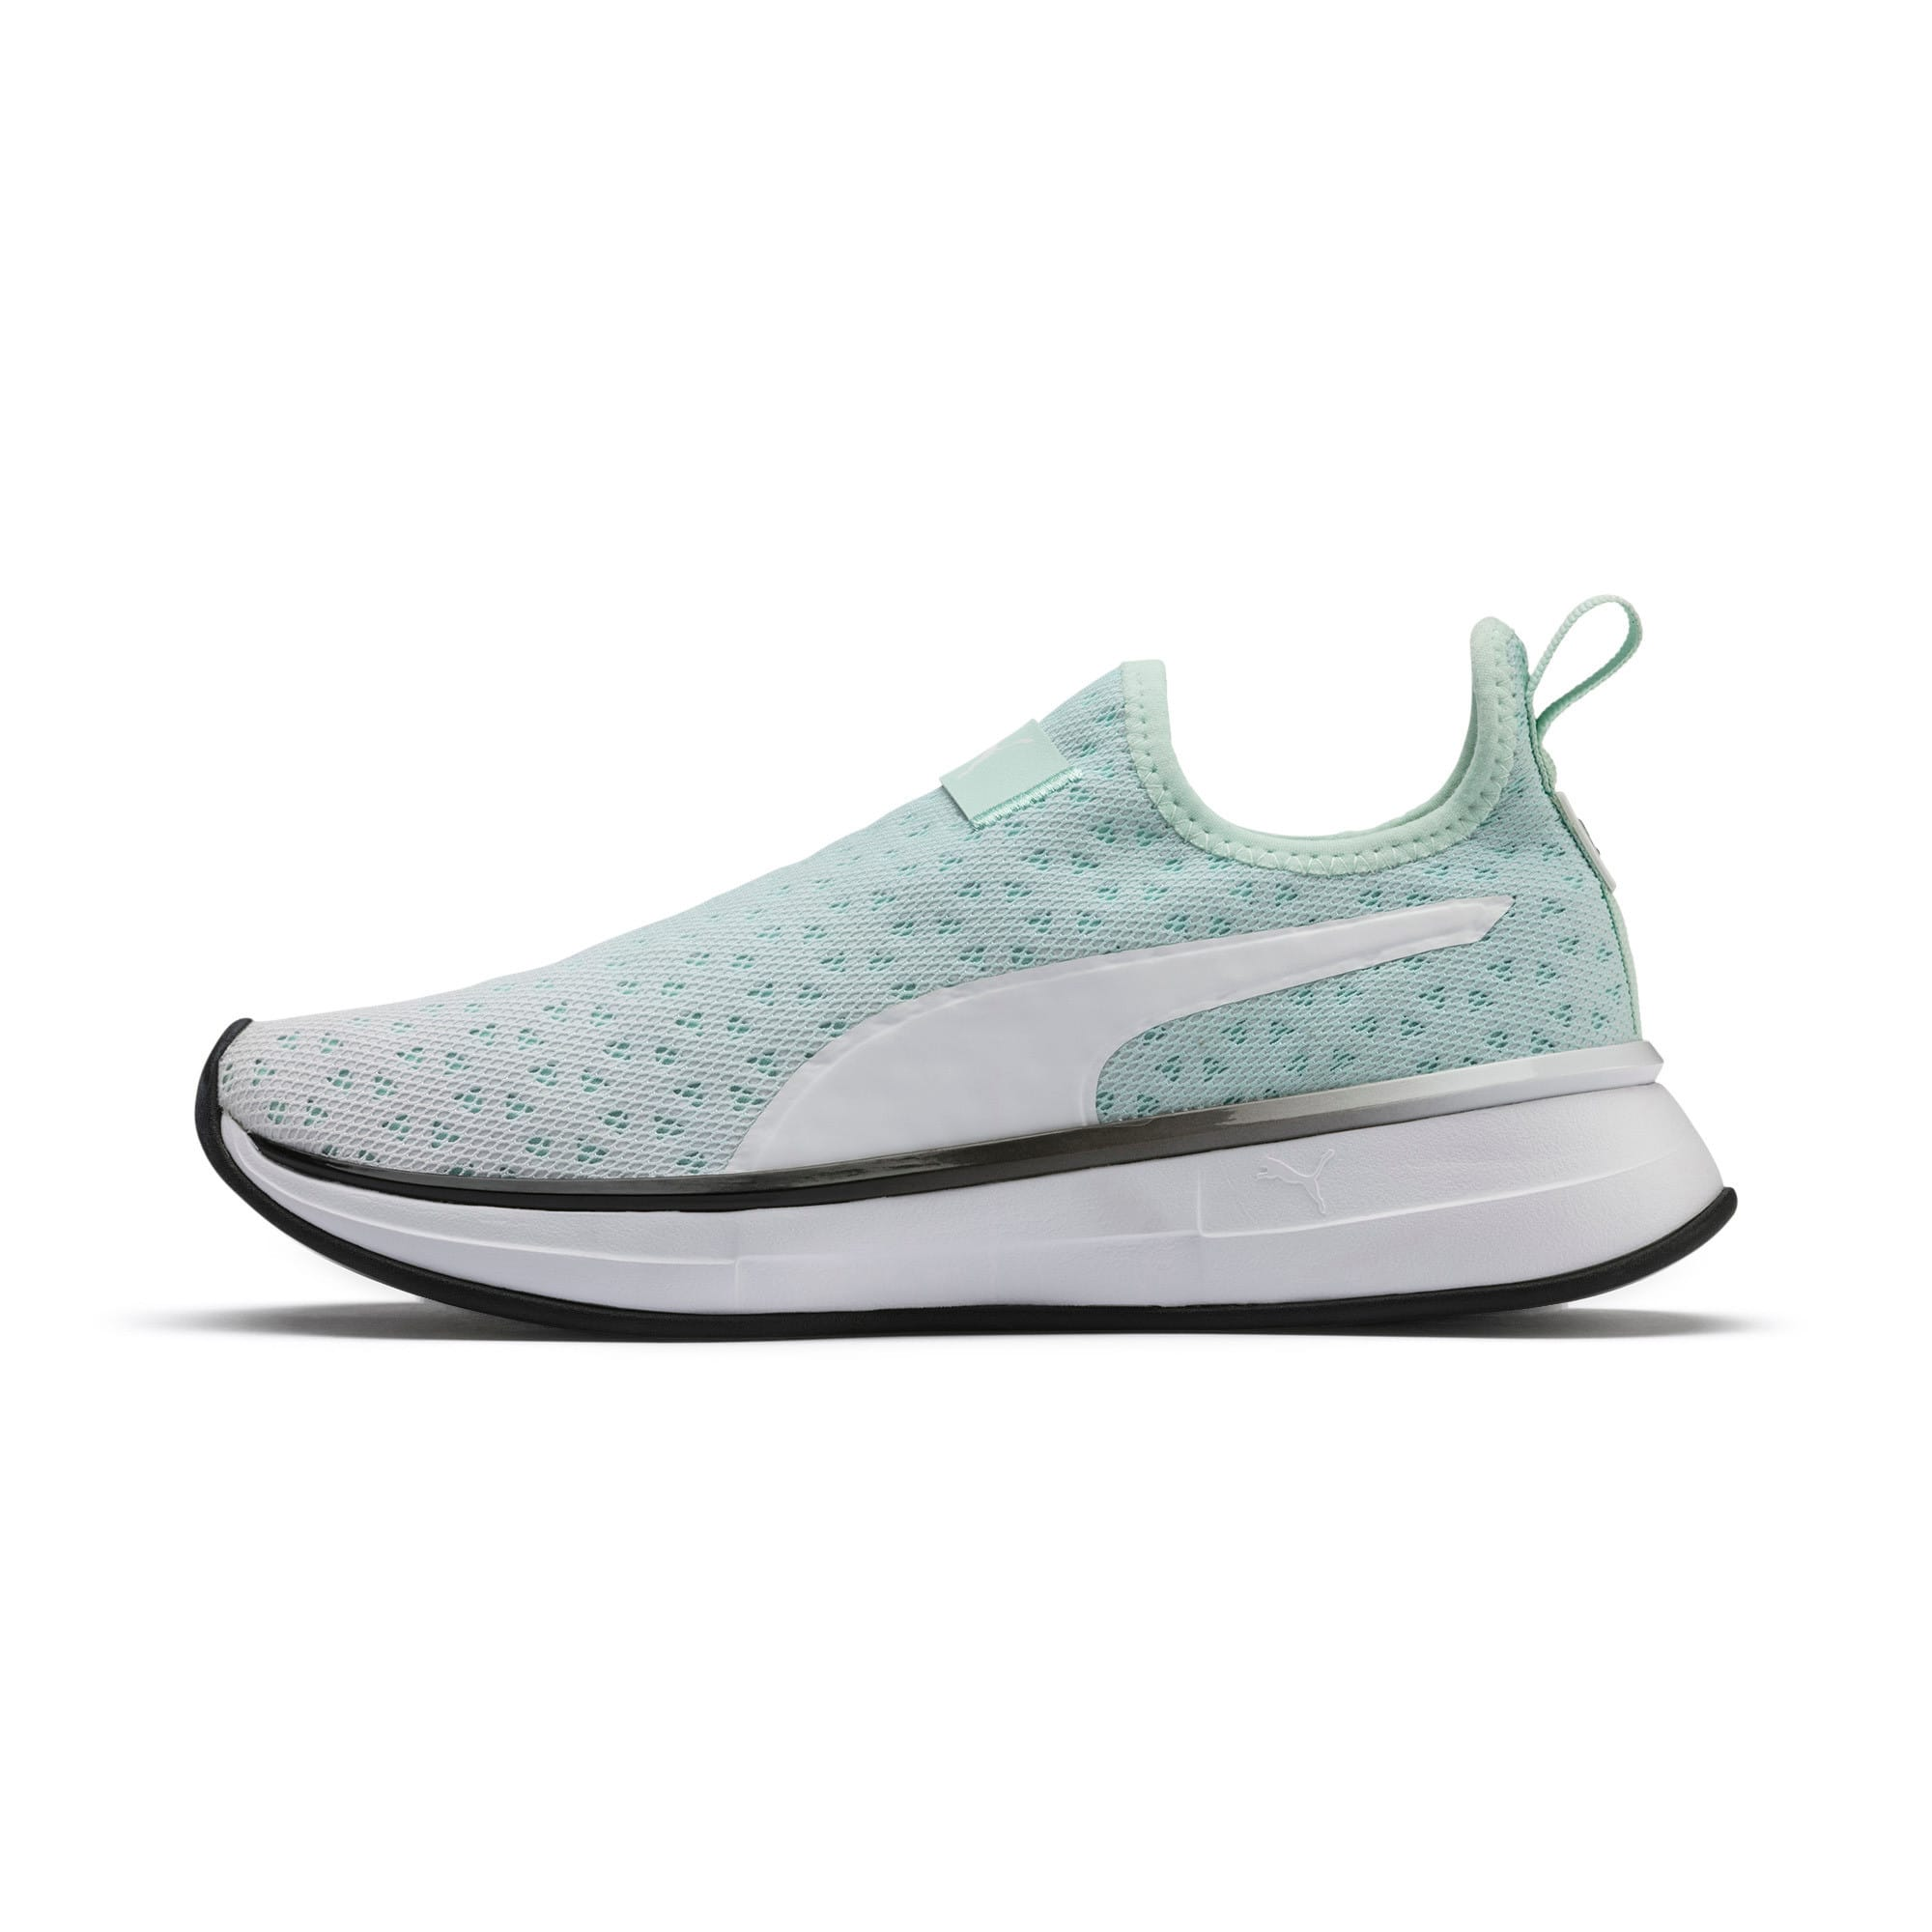 Thumbnail 1 of SG Slip-on Bright Fade Women's Training Shoes, Fair Aqua-Puma Black, medium